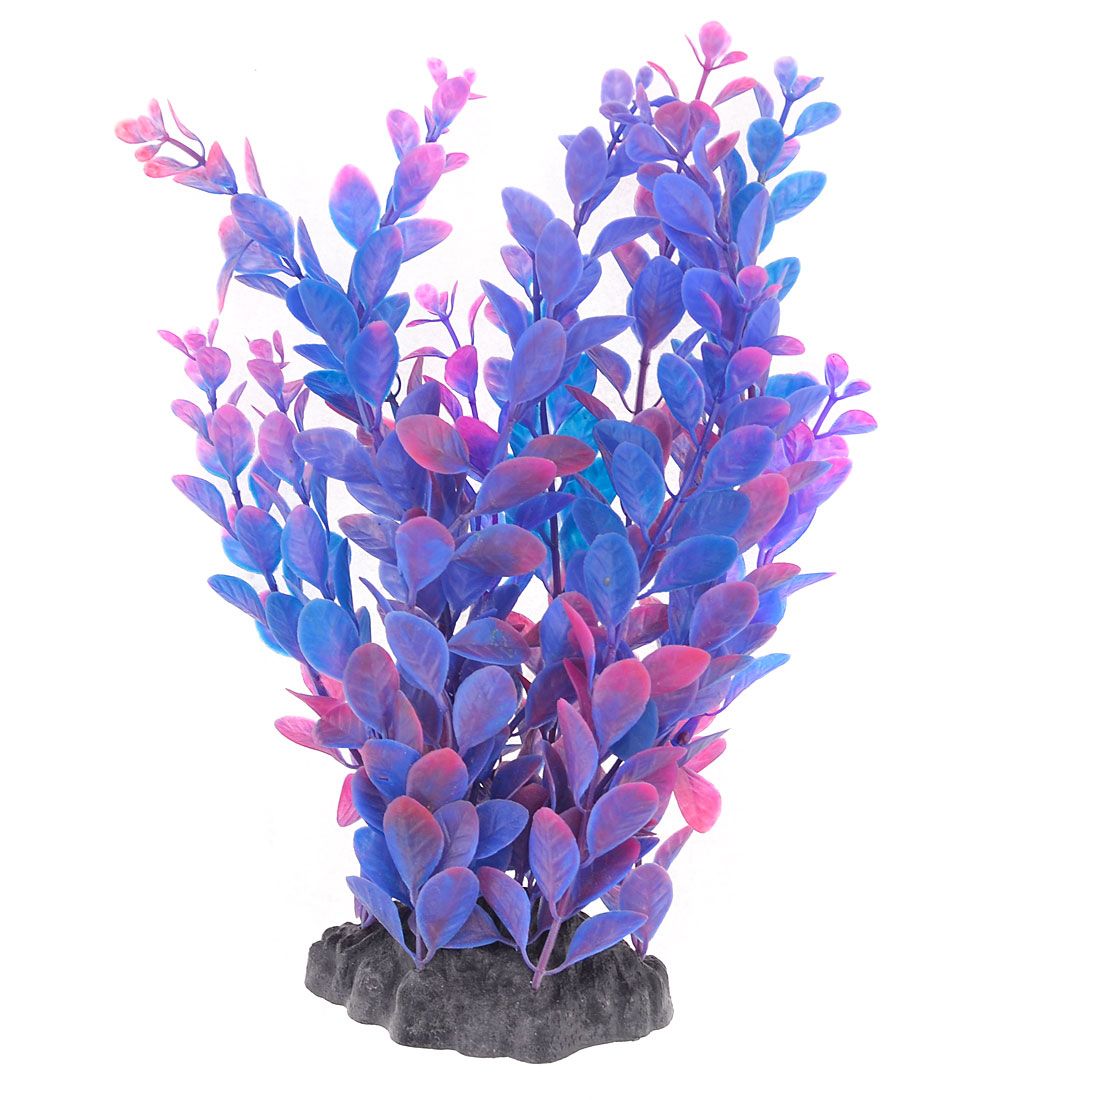 "Emulational Aquatic Grasses Underwater Plant 9.8"" Height Decor for Fish Tank"